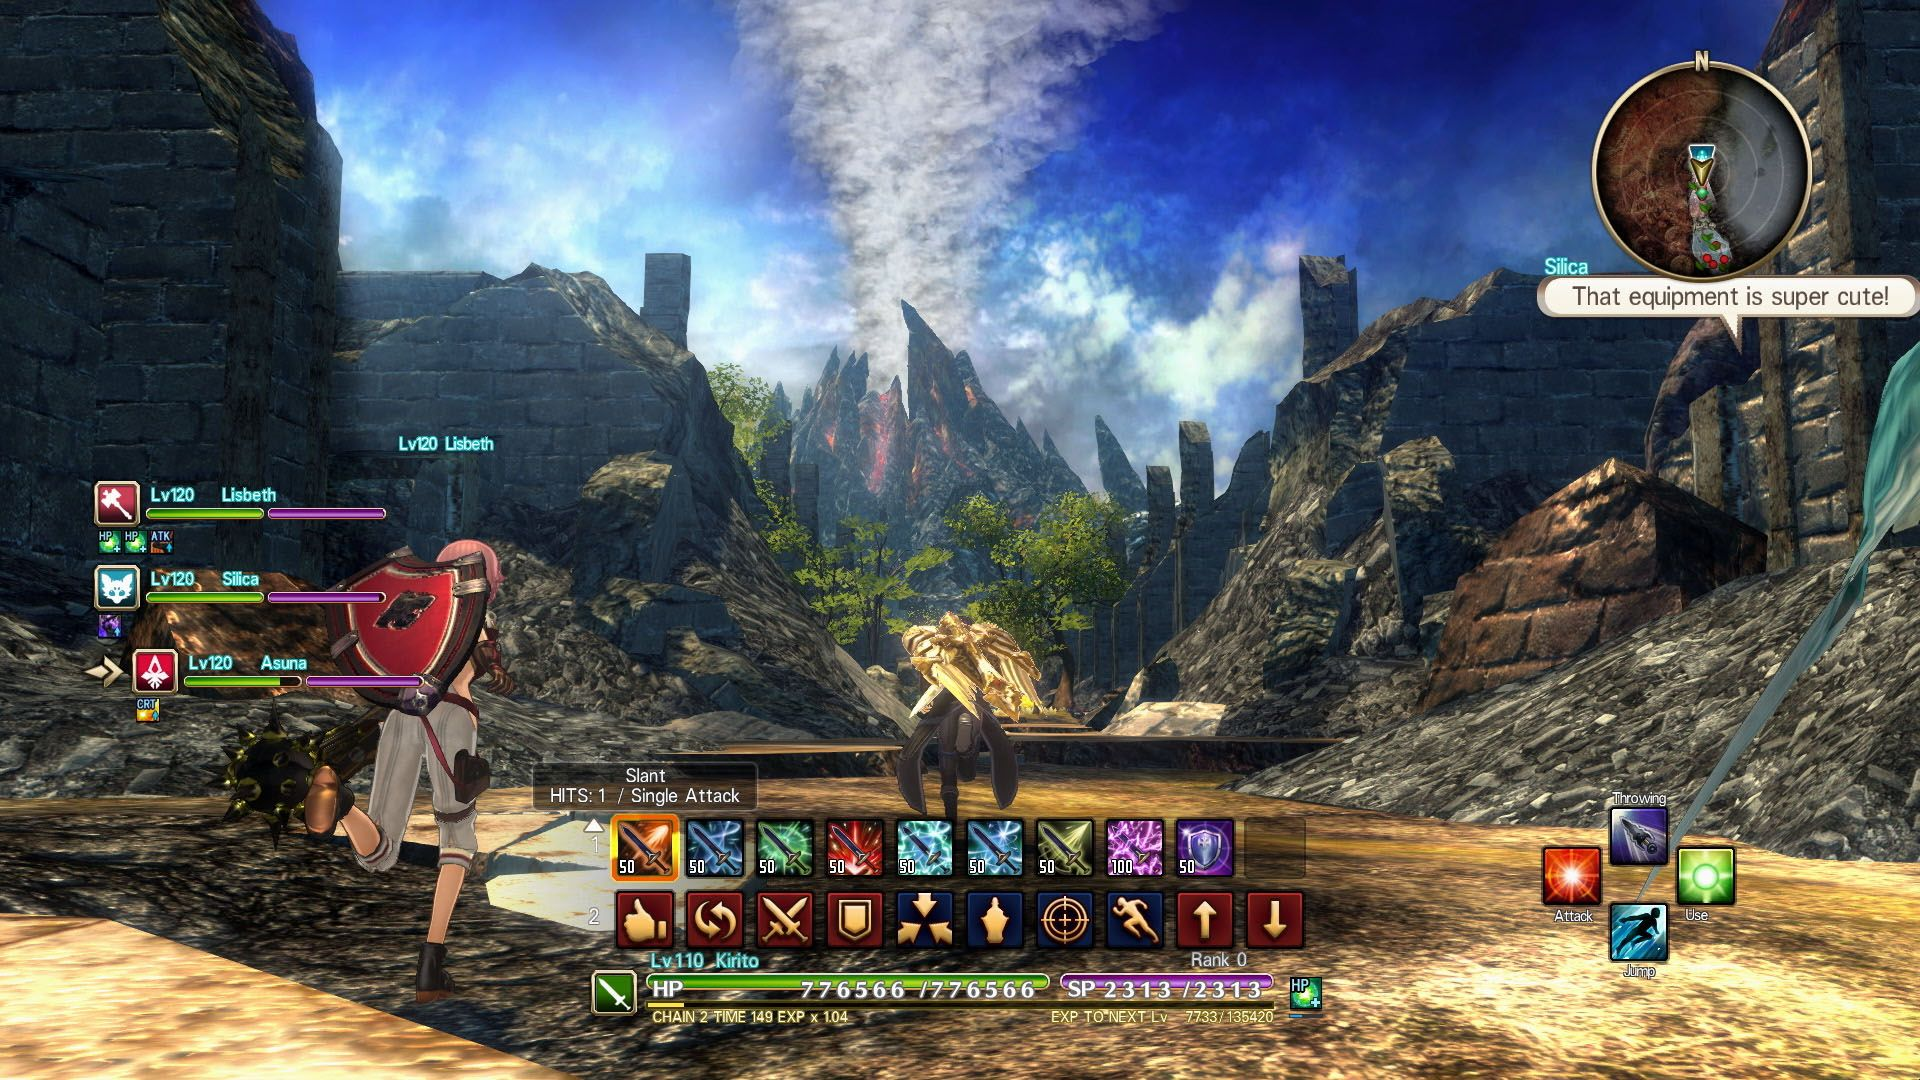 Sword Art Online Hollow Realization Free Download - CroHasIt